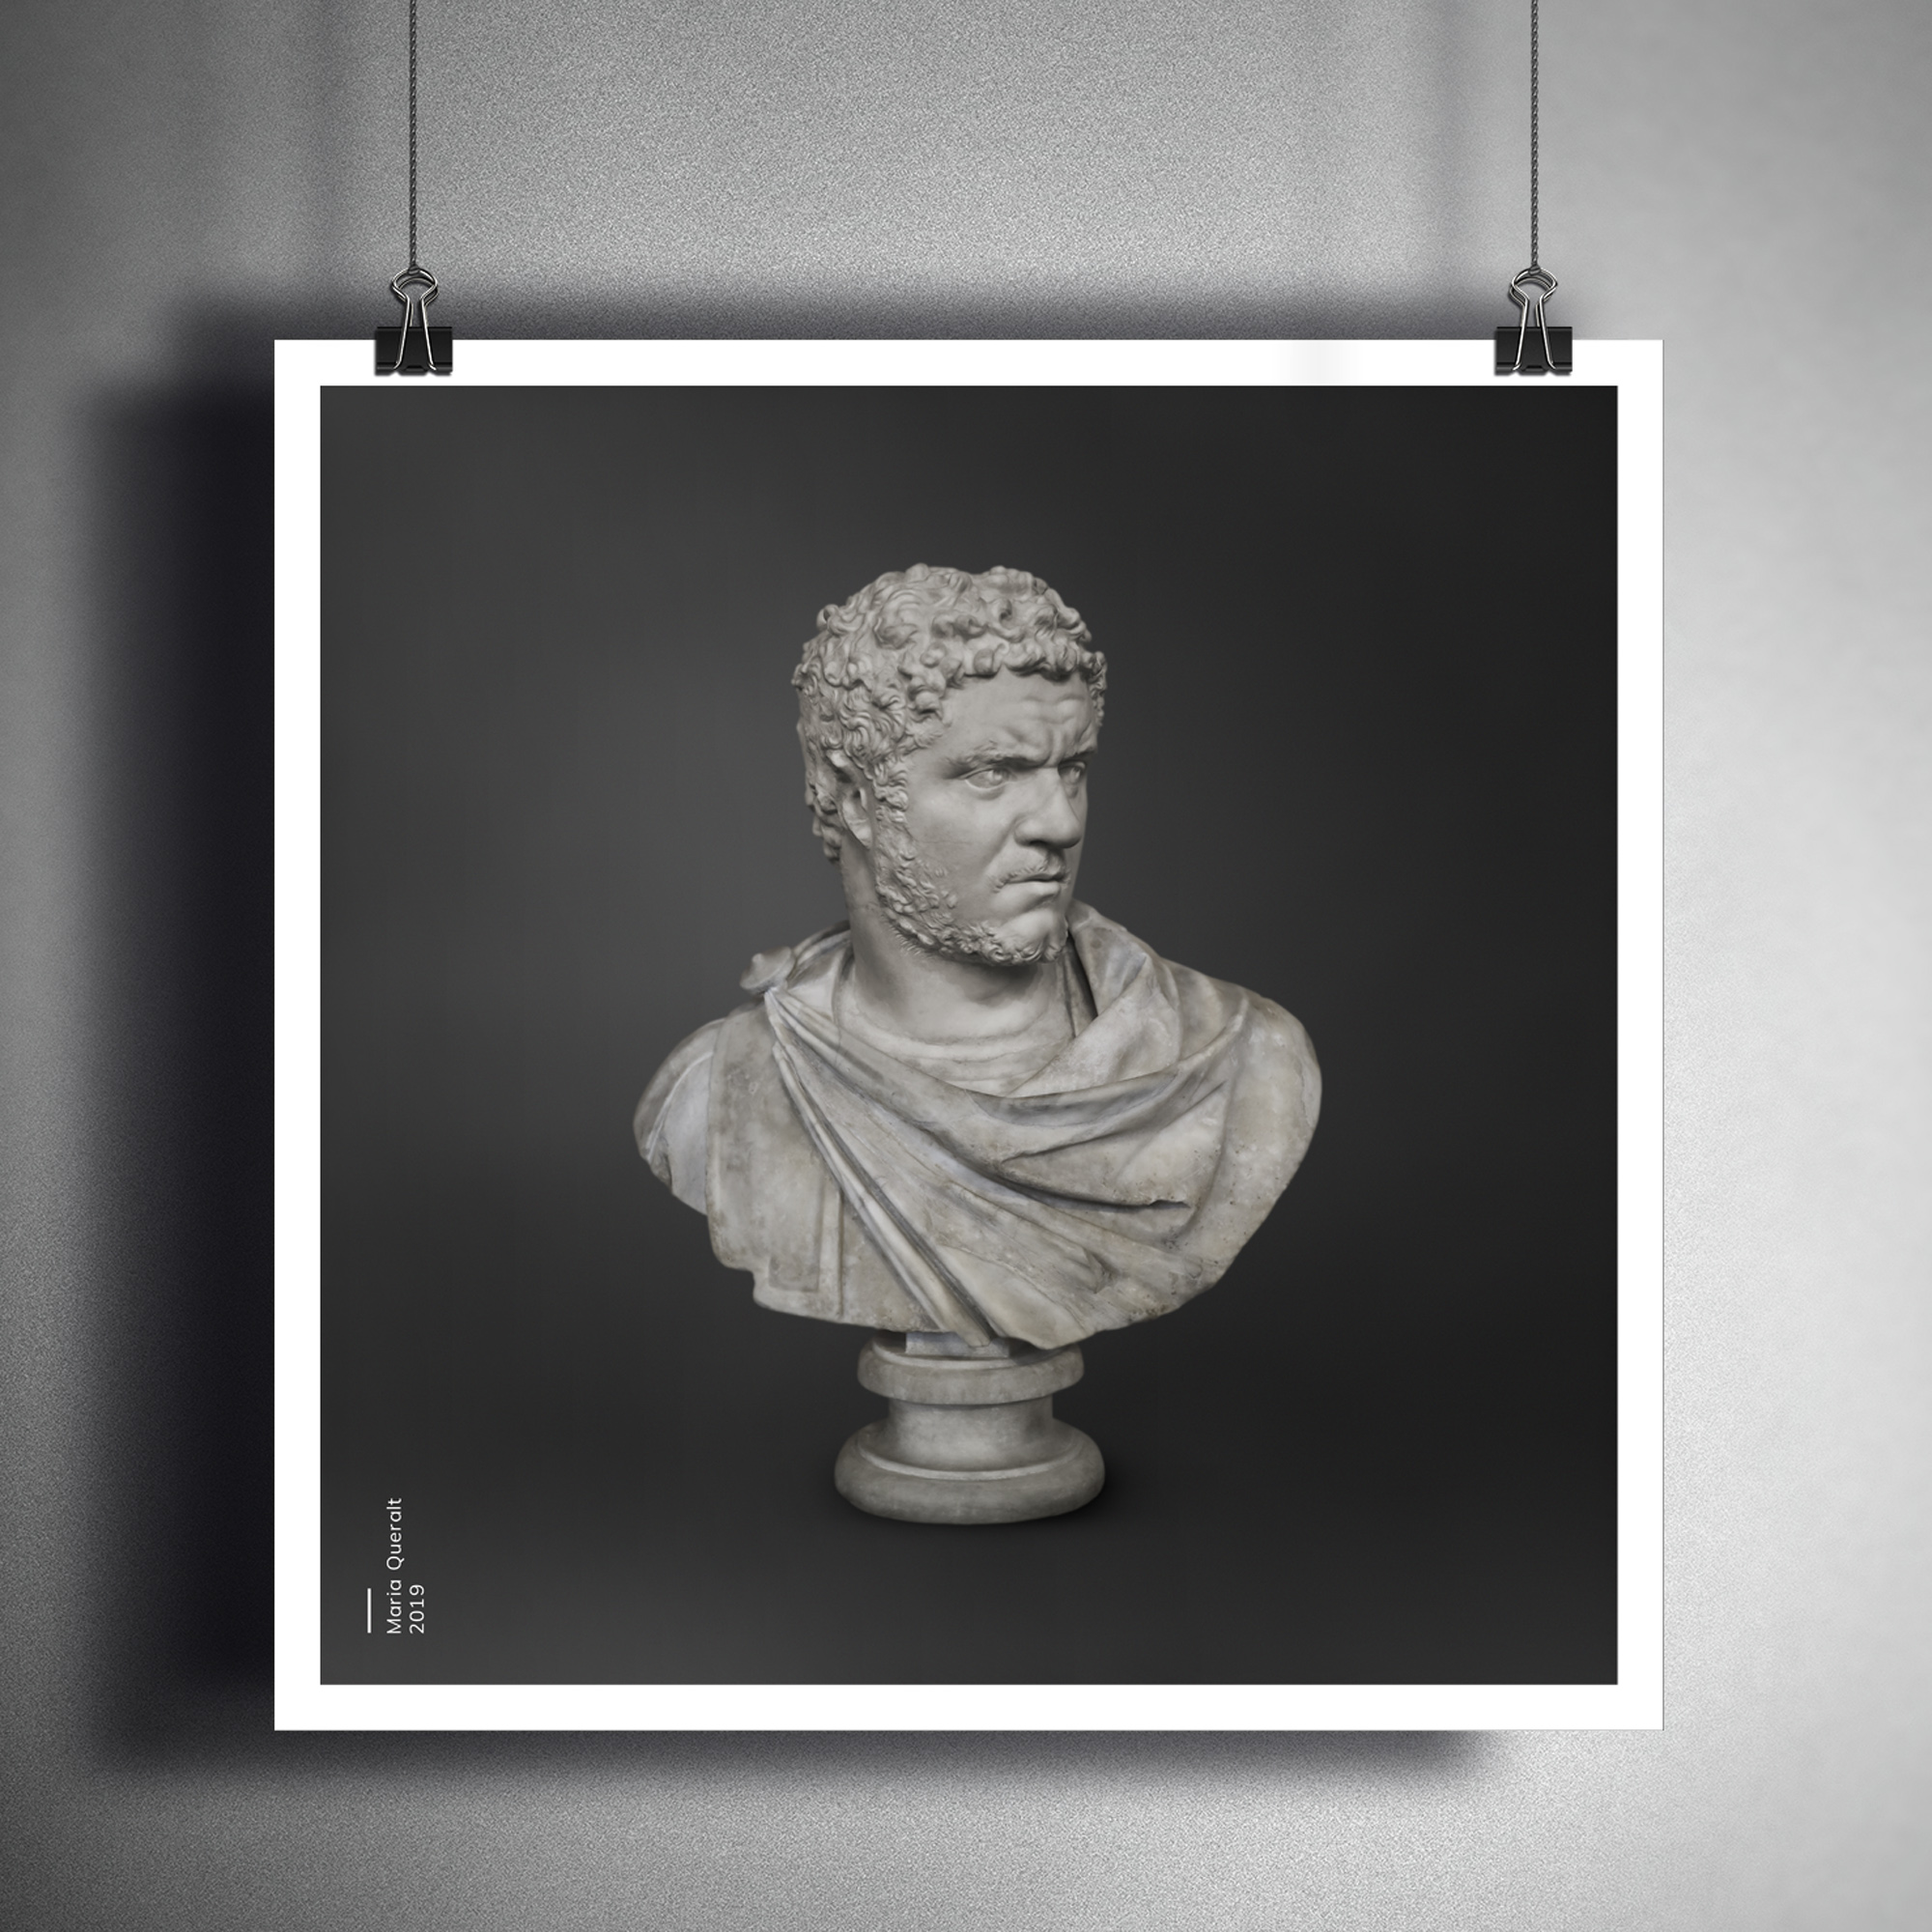 Framed photo on wall of the Sculpture of Roman Emperor Caracalla, Louvre Museum, Paris. Part of the Ancient Influencers Photography series by Maria Queralt. Photography and retouche by Maria Queralt